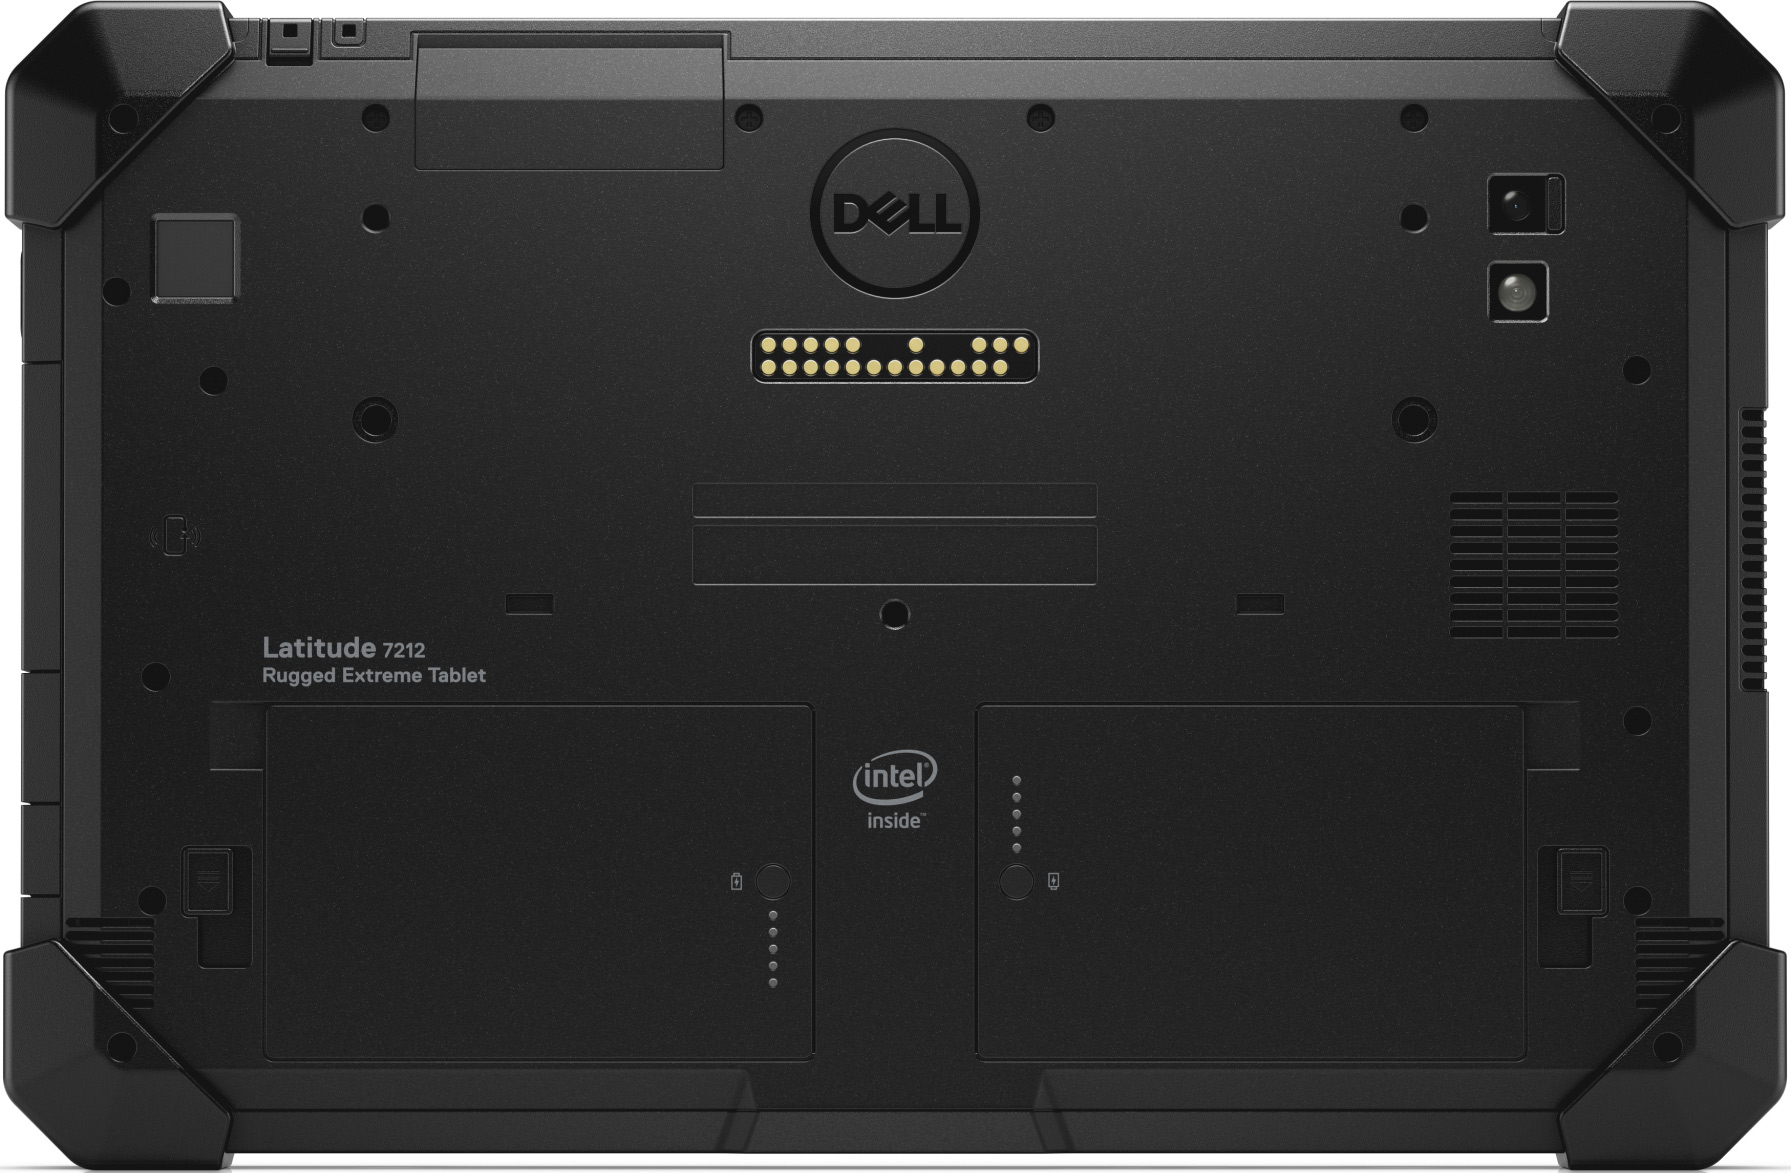 cpu updated in mil lcd made show std the operating tablet mm withstand rugged thermal extremes dust certified extreme fhd comes thick dell to enclosure faster gets latitude drops sand rug